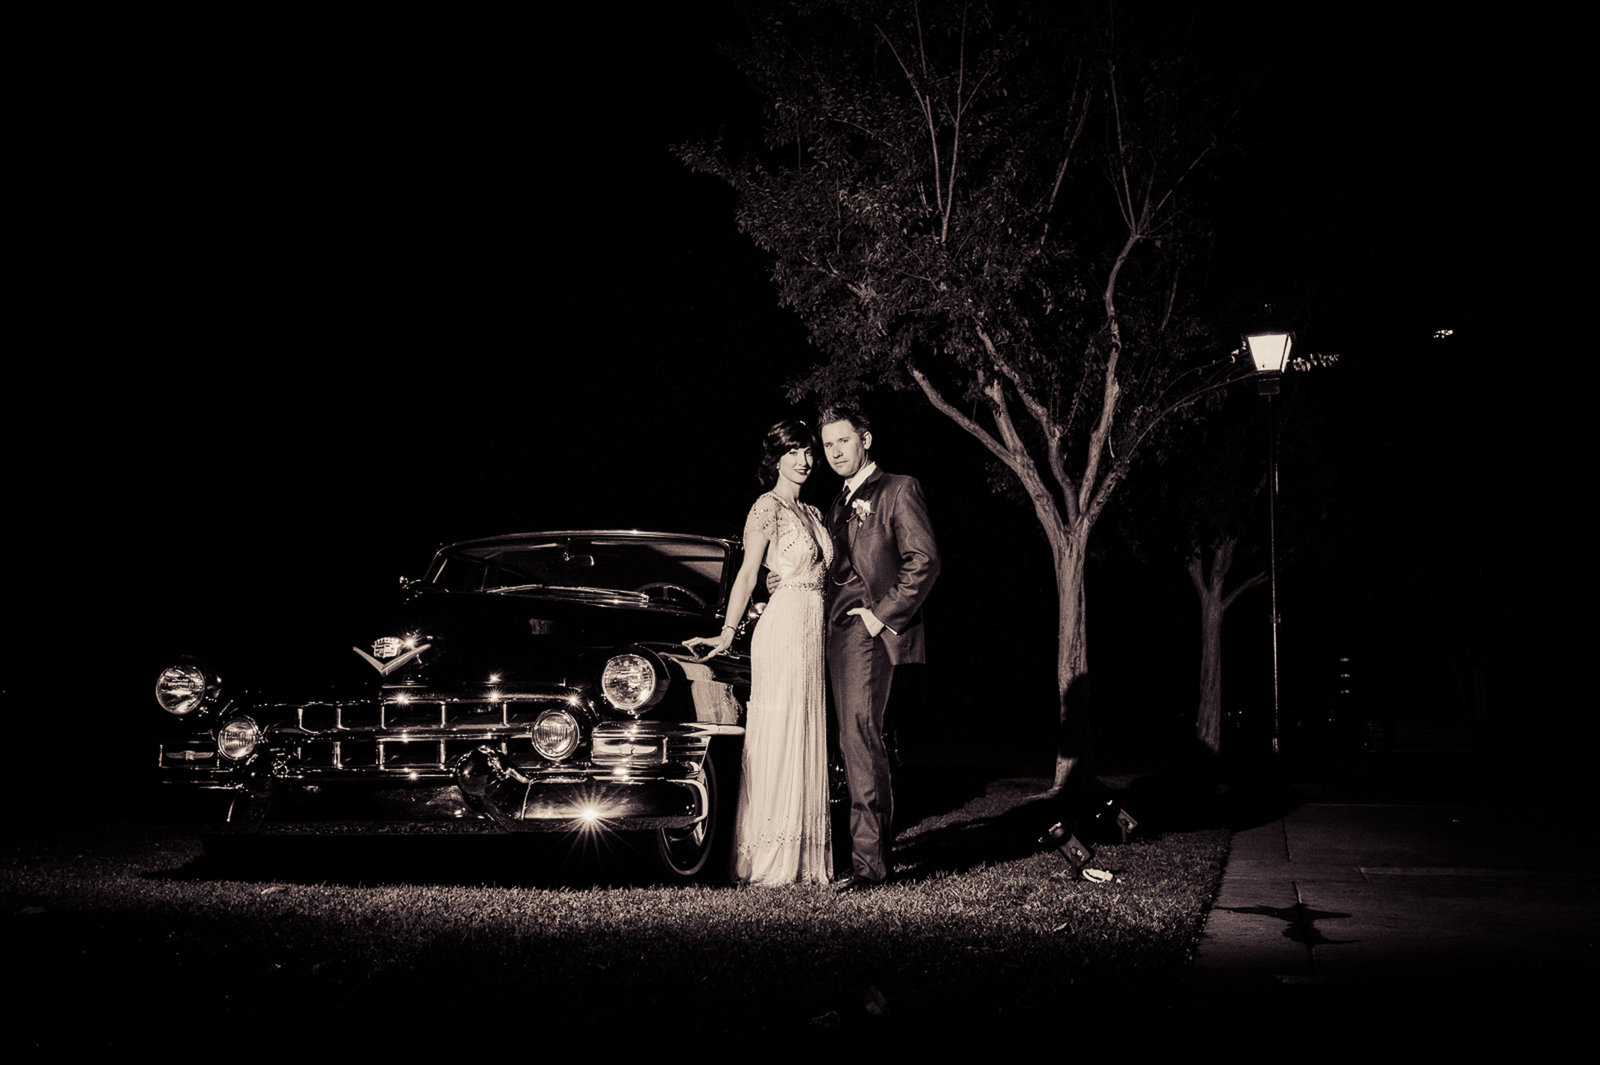 1940's inspired Wedding photography at Muckenthaler Mansion by inGRACE photography